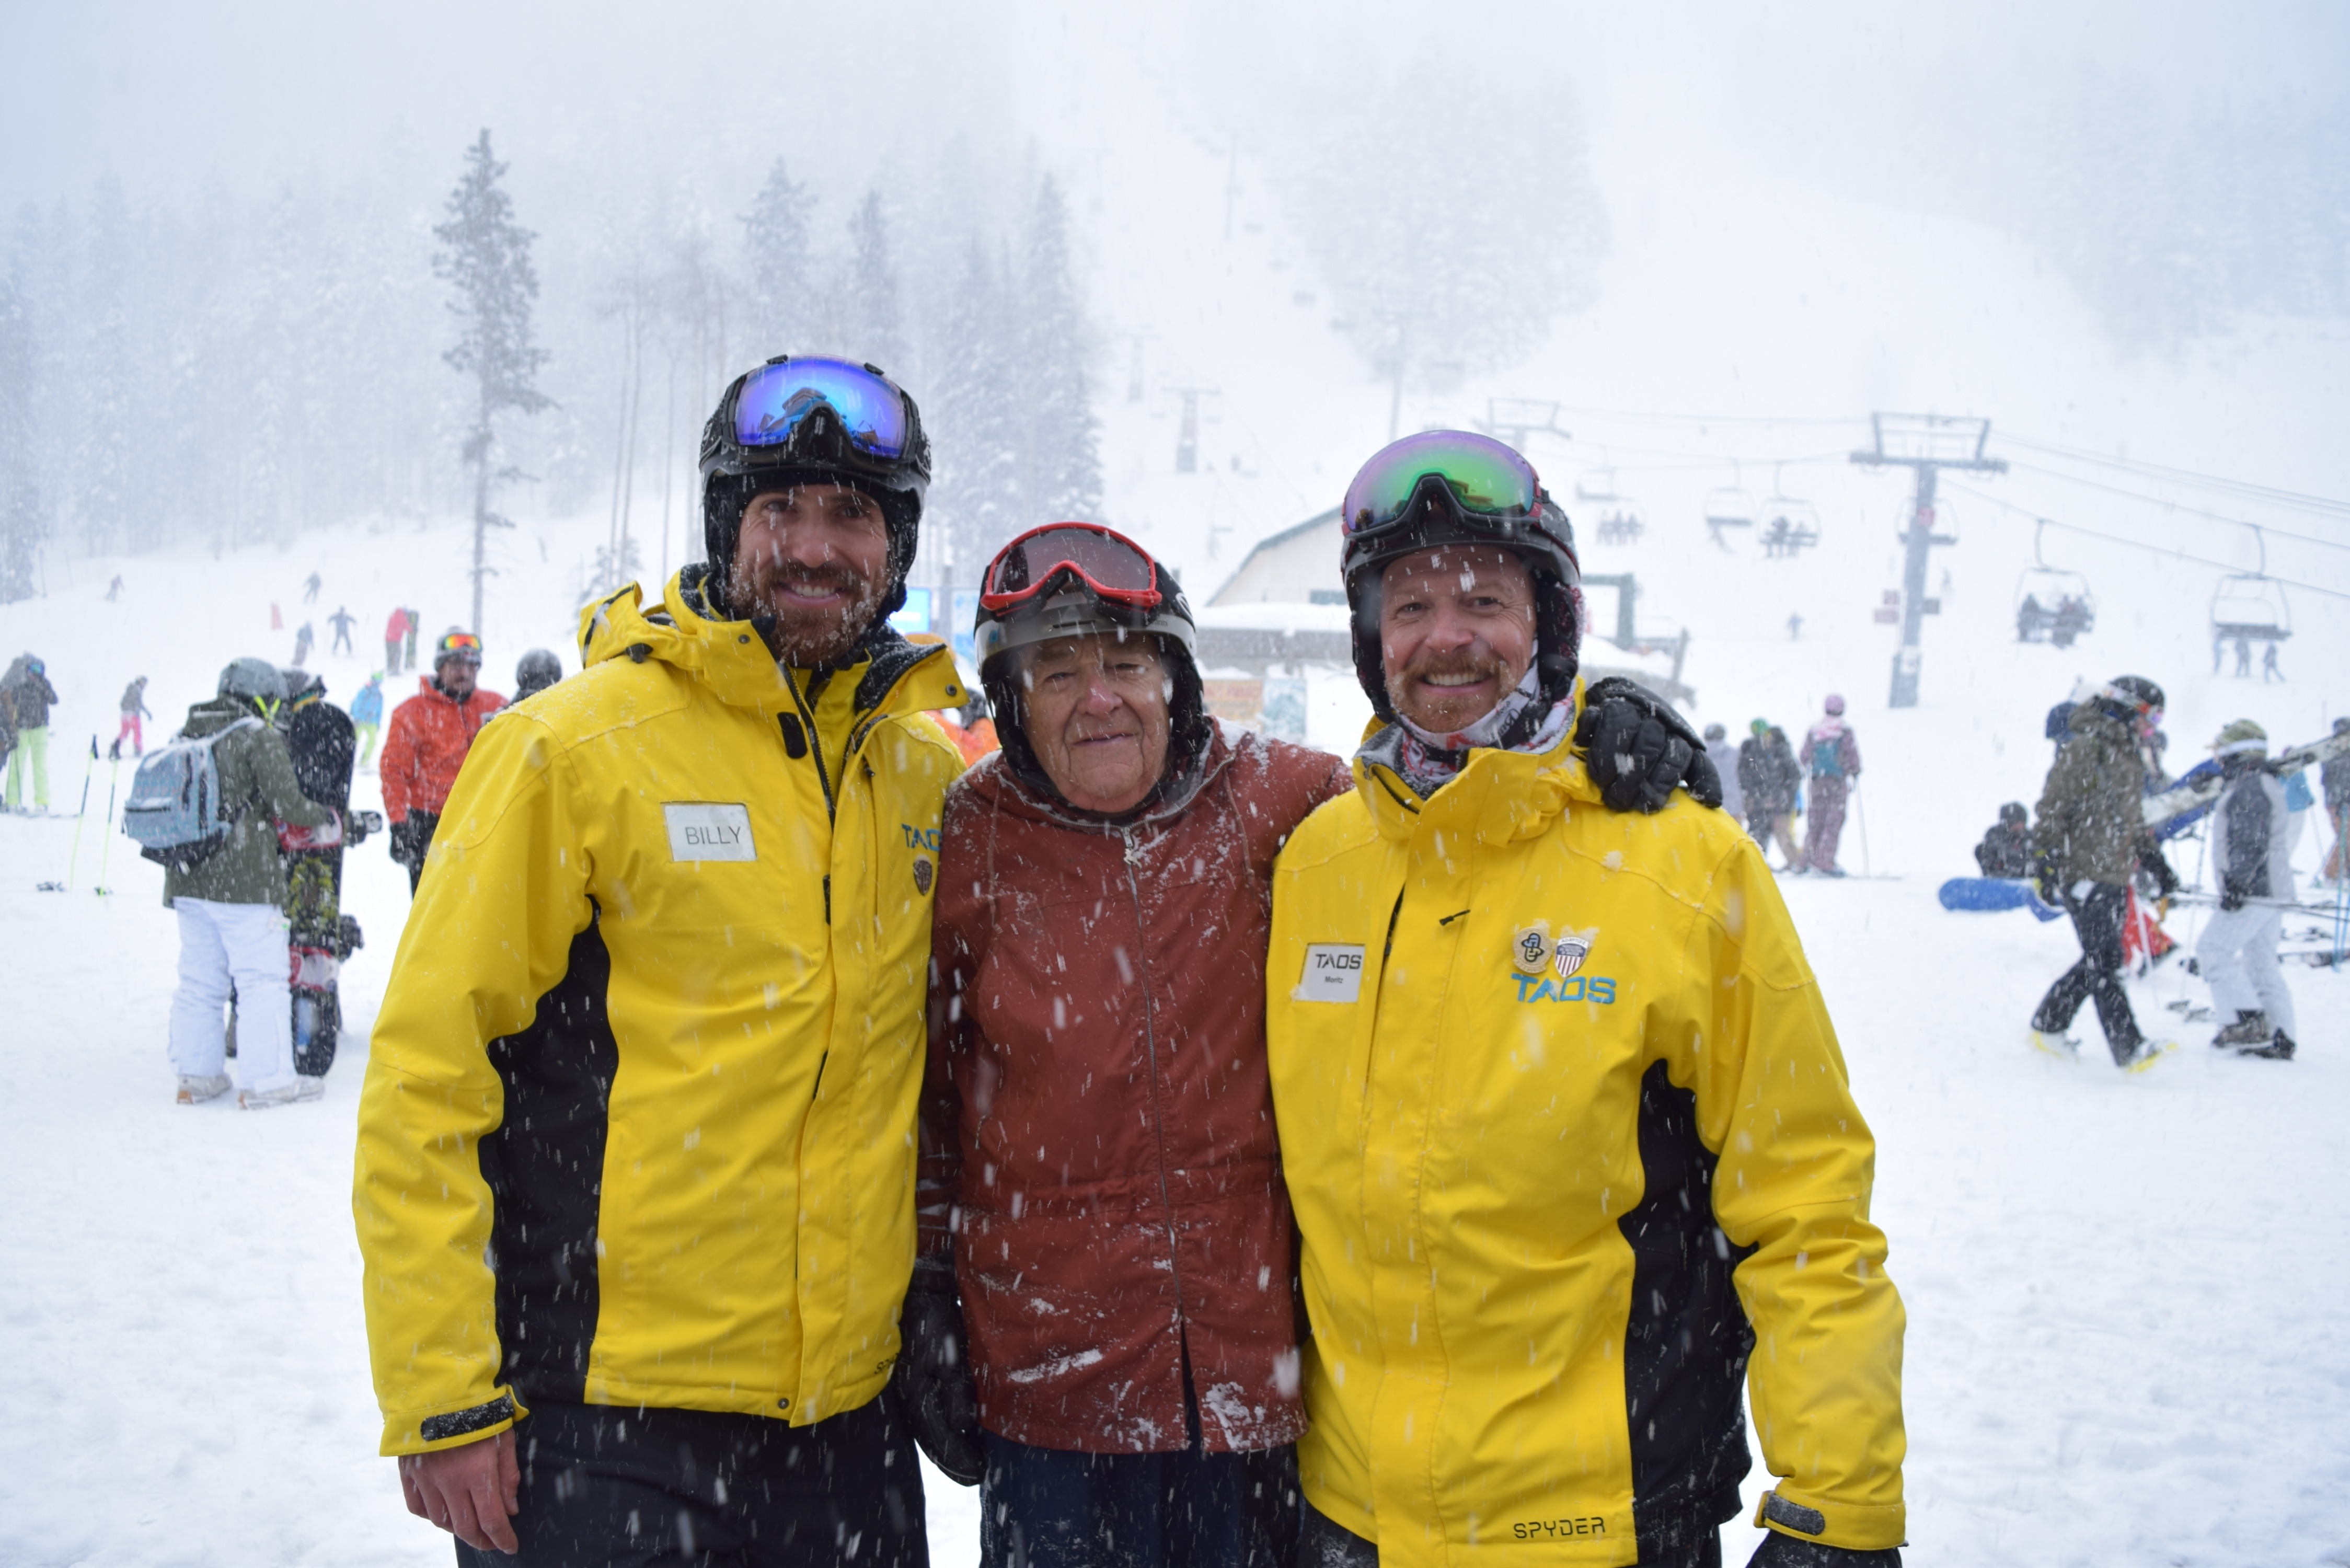 A older skier embraces two Taos Ski Valley instructors. Chairlift, skiers, and snowboarders in background. Snowing heavily.